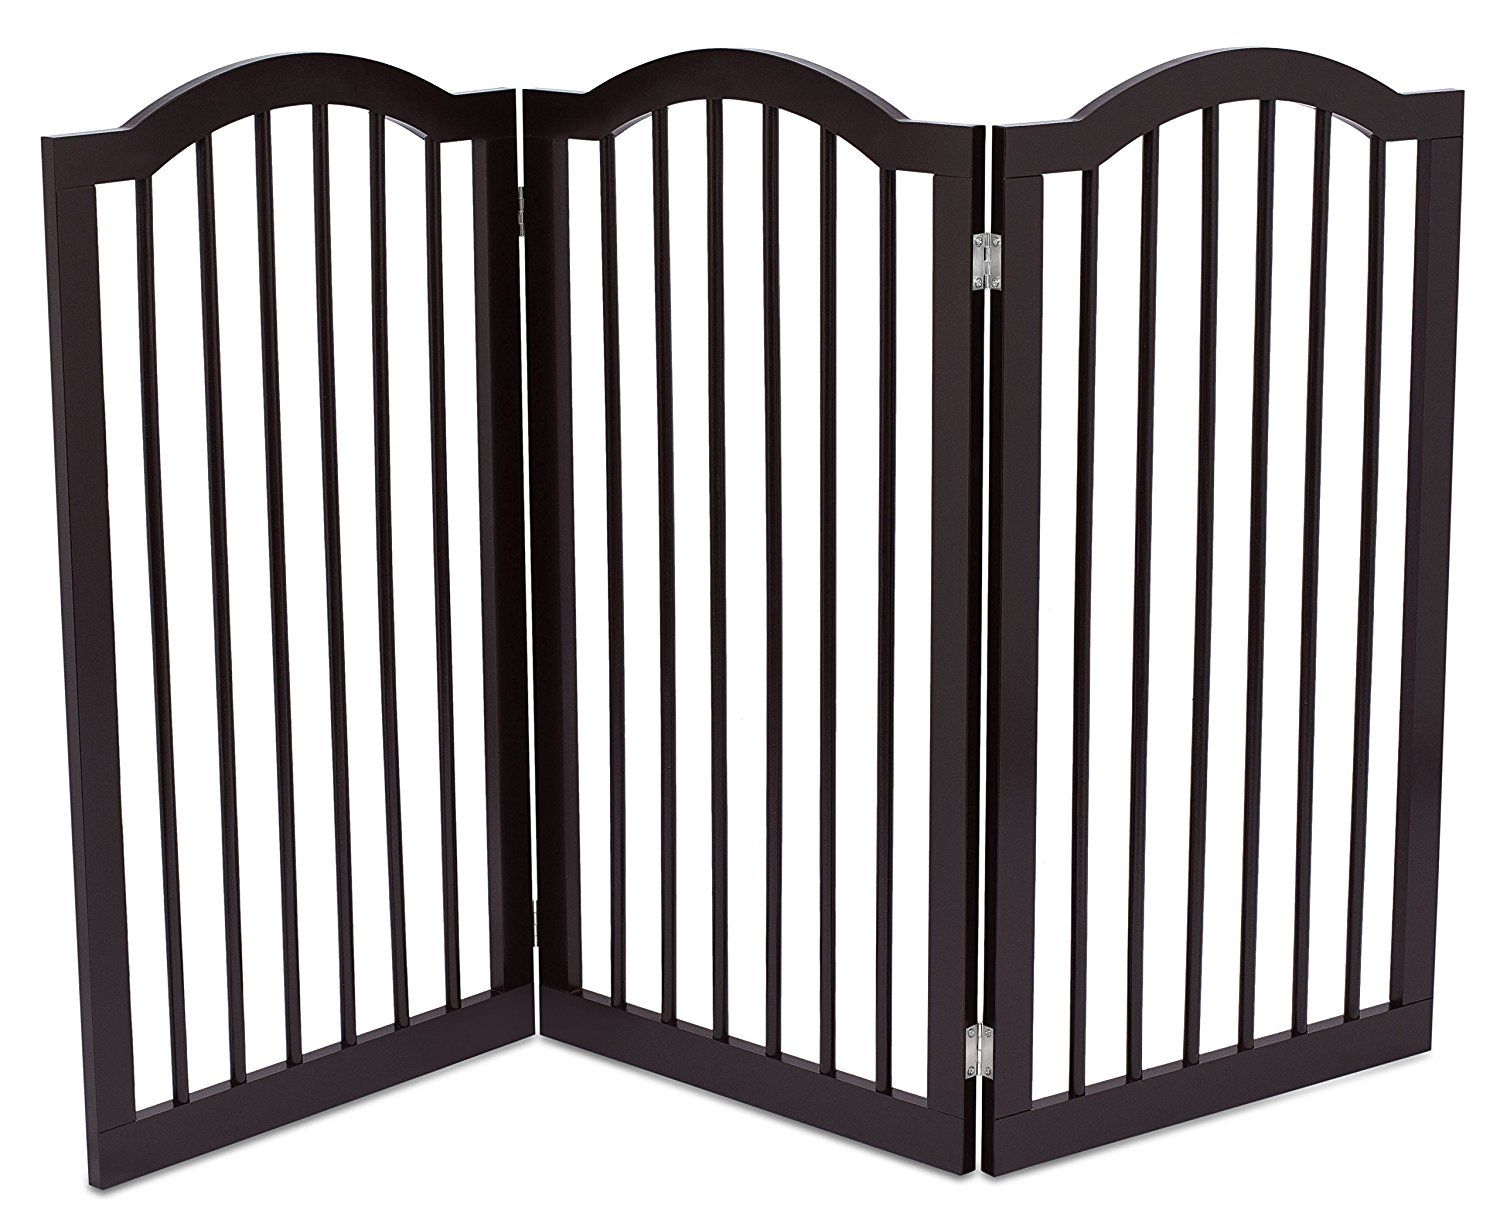 Internet S Best Pet Gate With Arched Top 3 Panel 36 Inch Tall